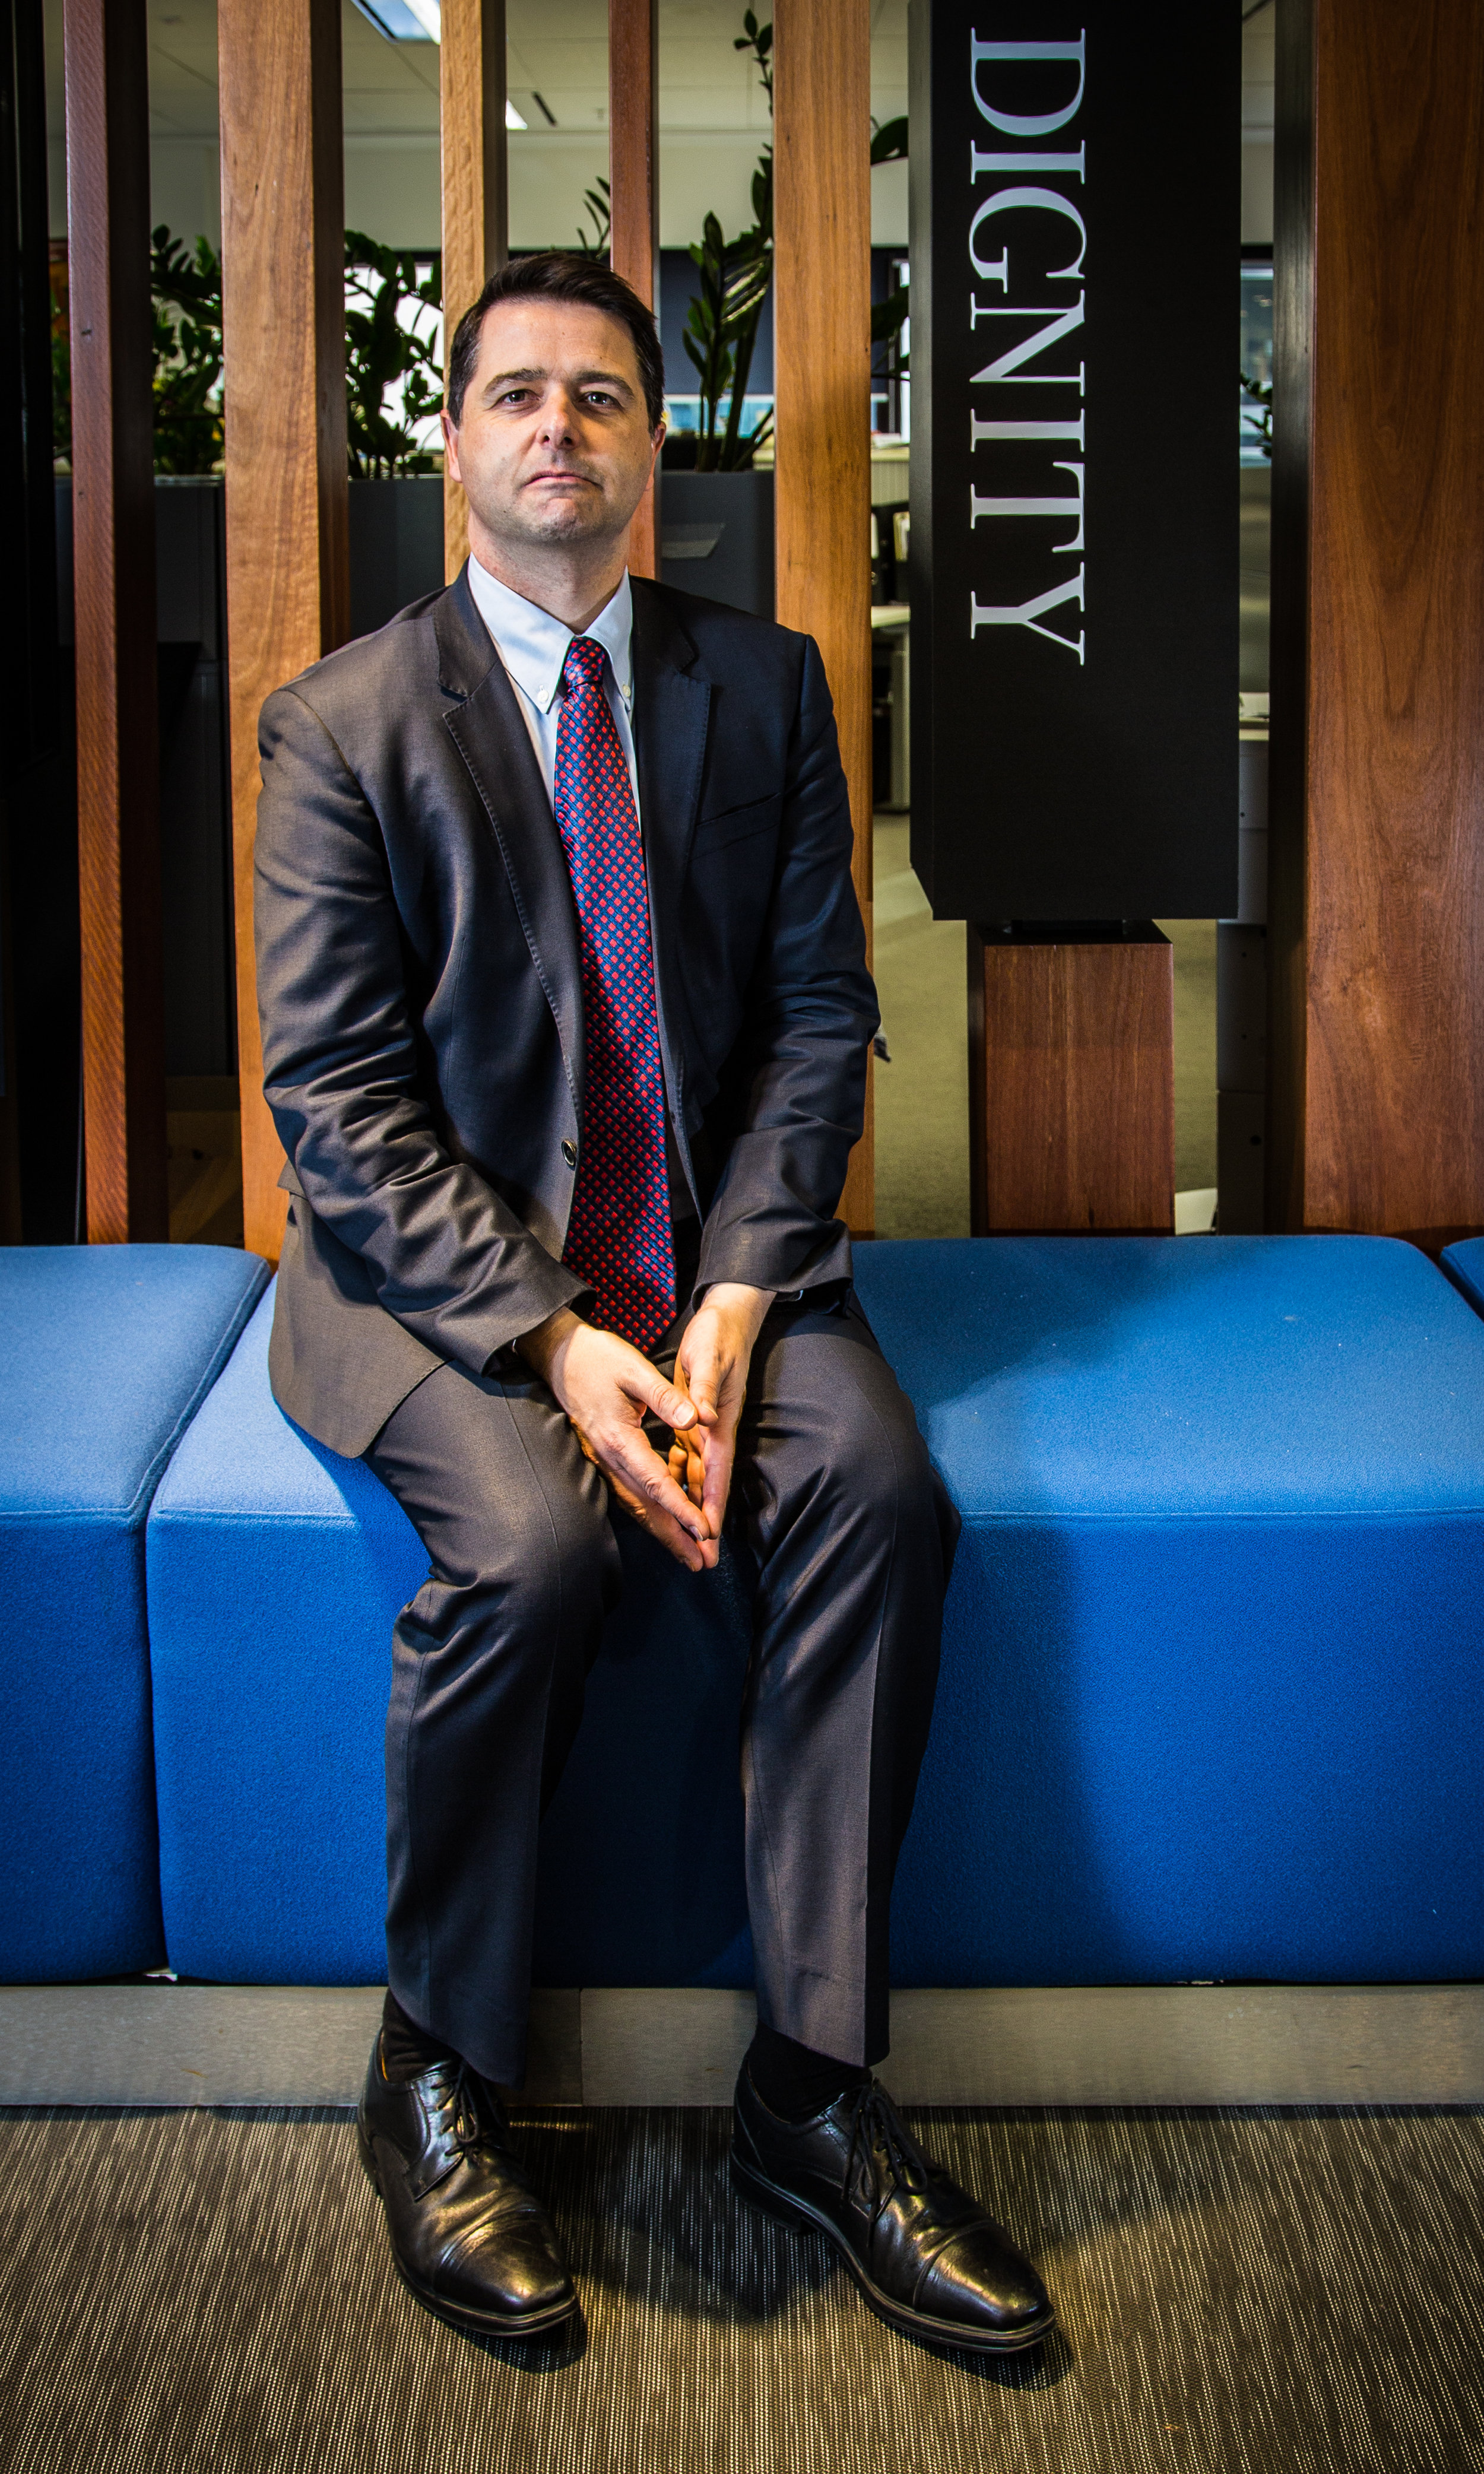 Alastair McEwin in the offices of the Australian Human Rights Commission in Sydney.